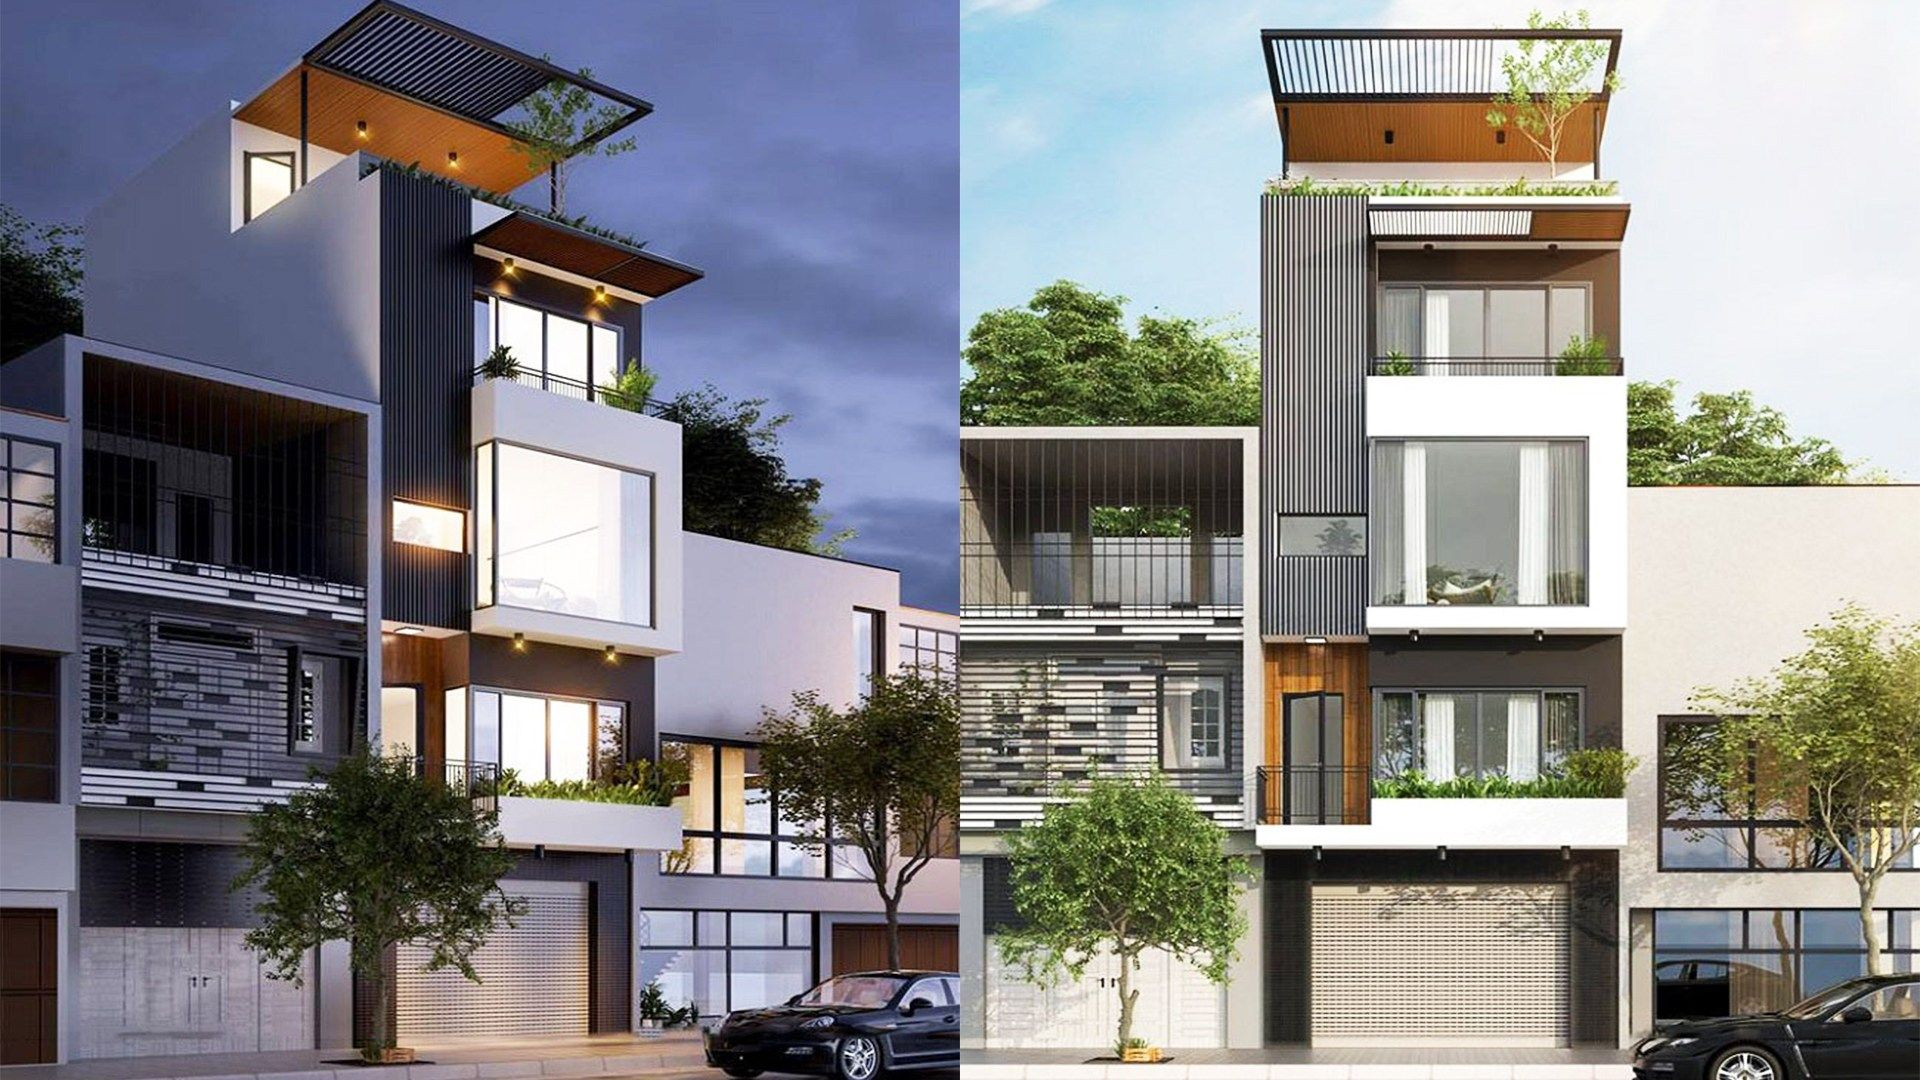 Narrow Lot House Plans 5 9 5m With 4 Bedrooms Narrow Lot House Narrow Lot House Plans House Plans